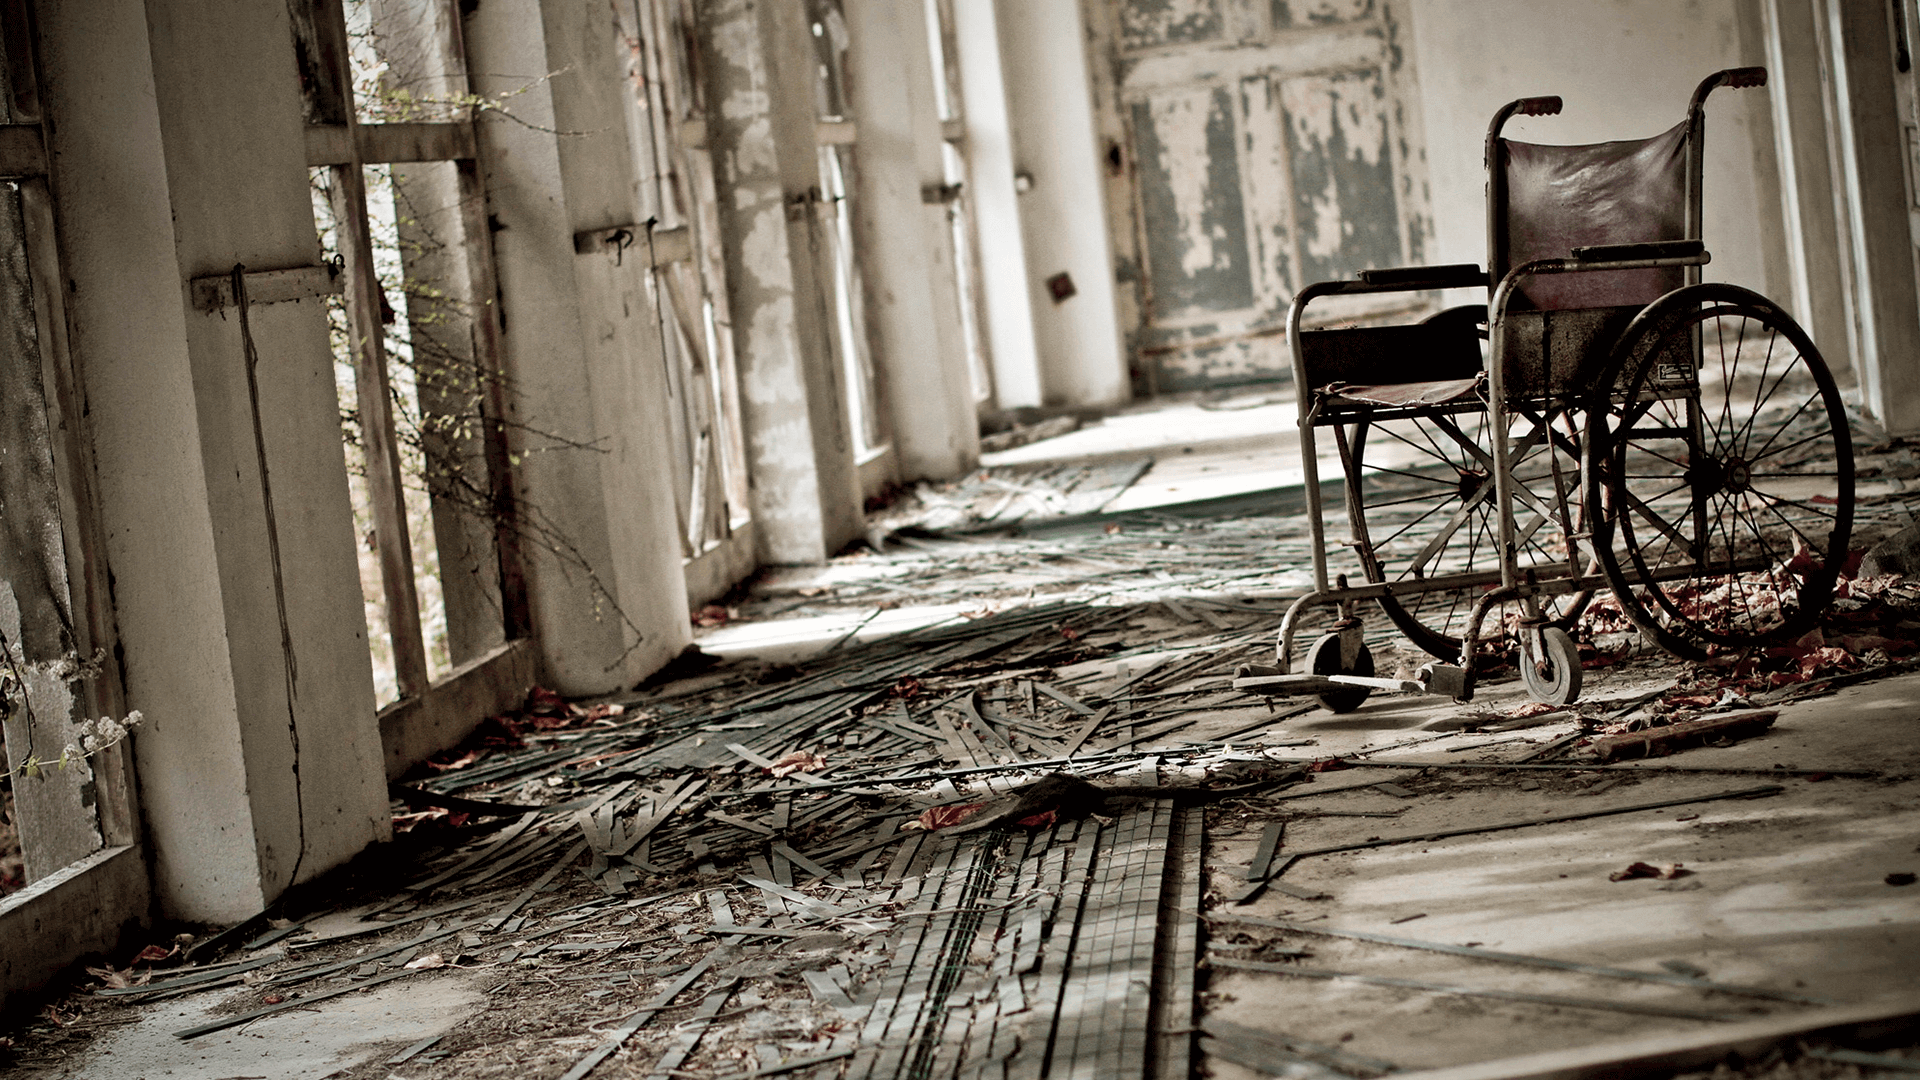 Haunted Hospitals and Cruel Fates: The Asylum Escape Room